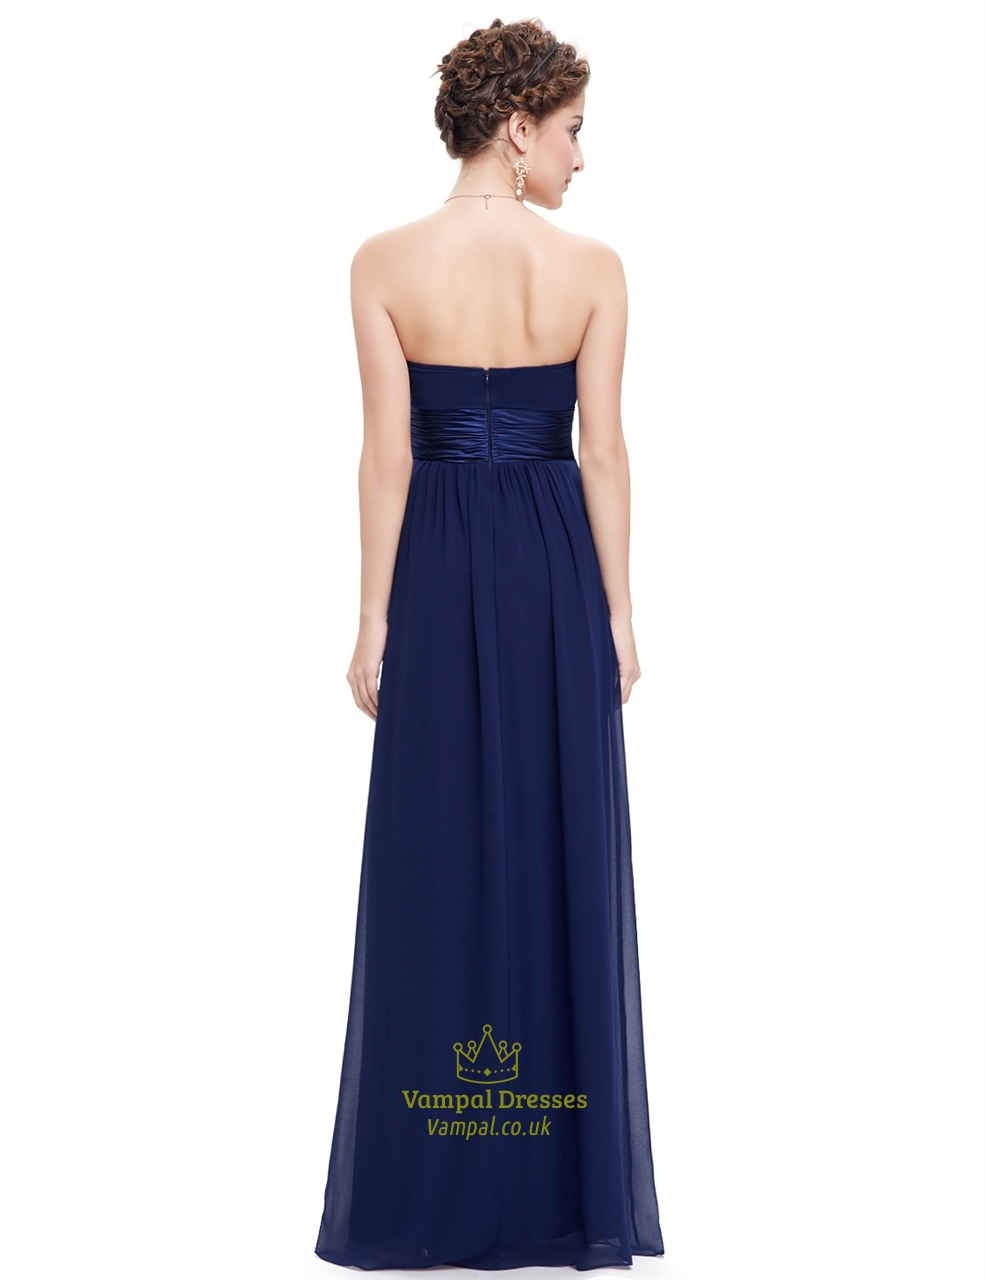 Navy Blue Long Open Back Chiffon Bridesmaid Dresses With Ruching | Vampal Dresses